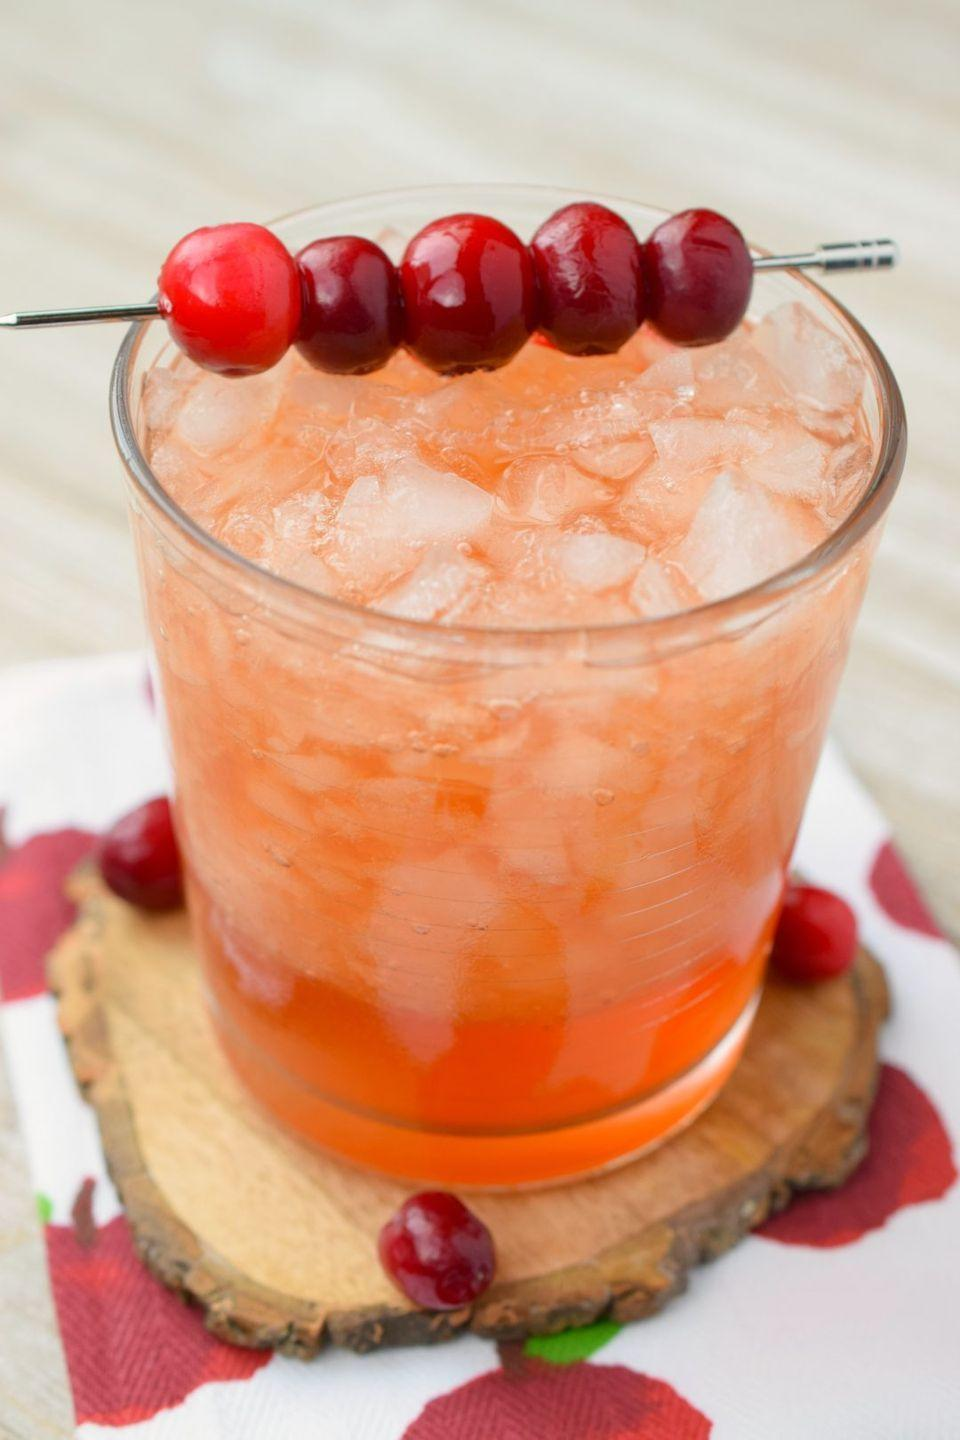 """<p>This sounds like the perfect cocktail to make for Thanksgiving dinner. Or just enjoy it on a crisp fall afternoon!</p><p><strong>Get the recipe at <a href=""""https://snacksandsips.com/cranberry-whiskey-apple-cider-cocktail/"""" rel=""""nofollow noopener"""" target=""""_blank"""" data-ylk=""""slk:Snacks and Sips"""" class=""""link rapid-noclick-resp"""">Snacks and Sips</a>.</strong></p><p><a class=""""link rapid-noclick-resp"""" href=""""https://go.redirectingat.com?id=74968X1596630&url=https%3A%2F%2Fwww.walmart.com%2Fip%2F3-Piece-Cocktail-Shaker-Stainless-Steel-16-oz%2F116981031&sref=https%3A%2F%2Fwww.thepioneerwoman.com%2Ffood-cooking%2Fmeals-menus%2Fg33510531%2Ffall-cocktail-recipes%2F"""" rel=""""nofollow noopener"""" target=""""_blank"""" data-ylk=""""slk:SHOP COCKTAIL SHAKERS"""">SHOP COCKTAIL SHAKERS</a> </p>"""